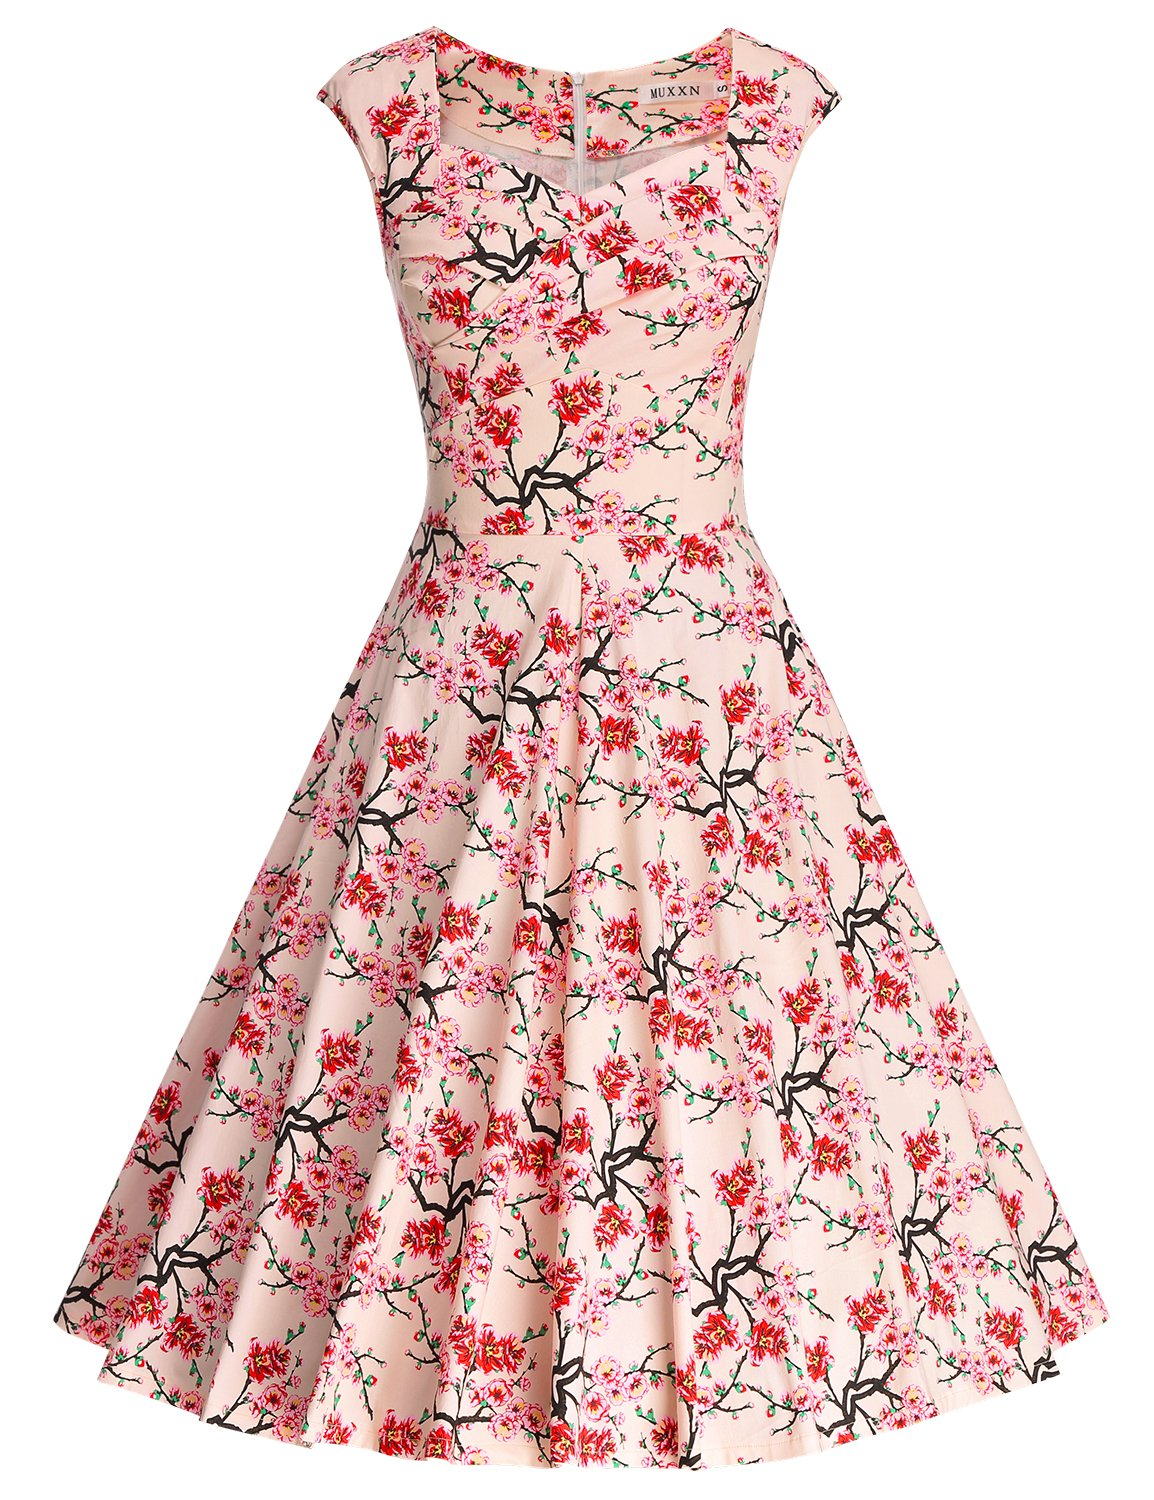 Best Rated in Bridesmaid Dresses & Helpful Customer Reviews - Amazon.com